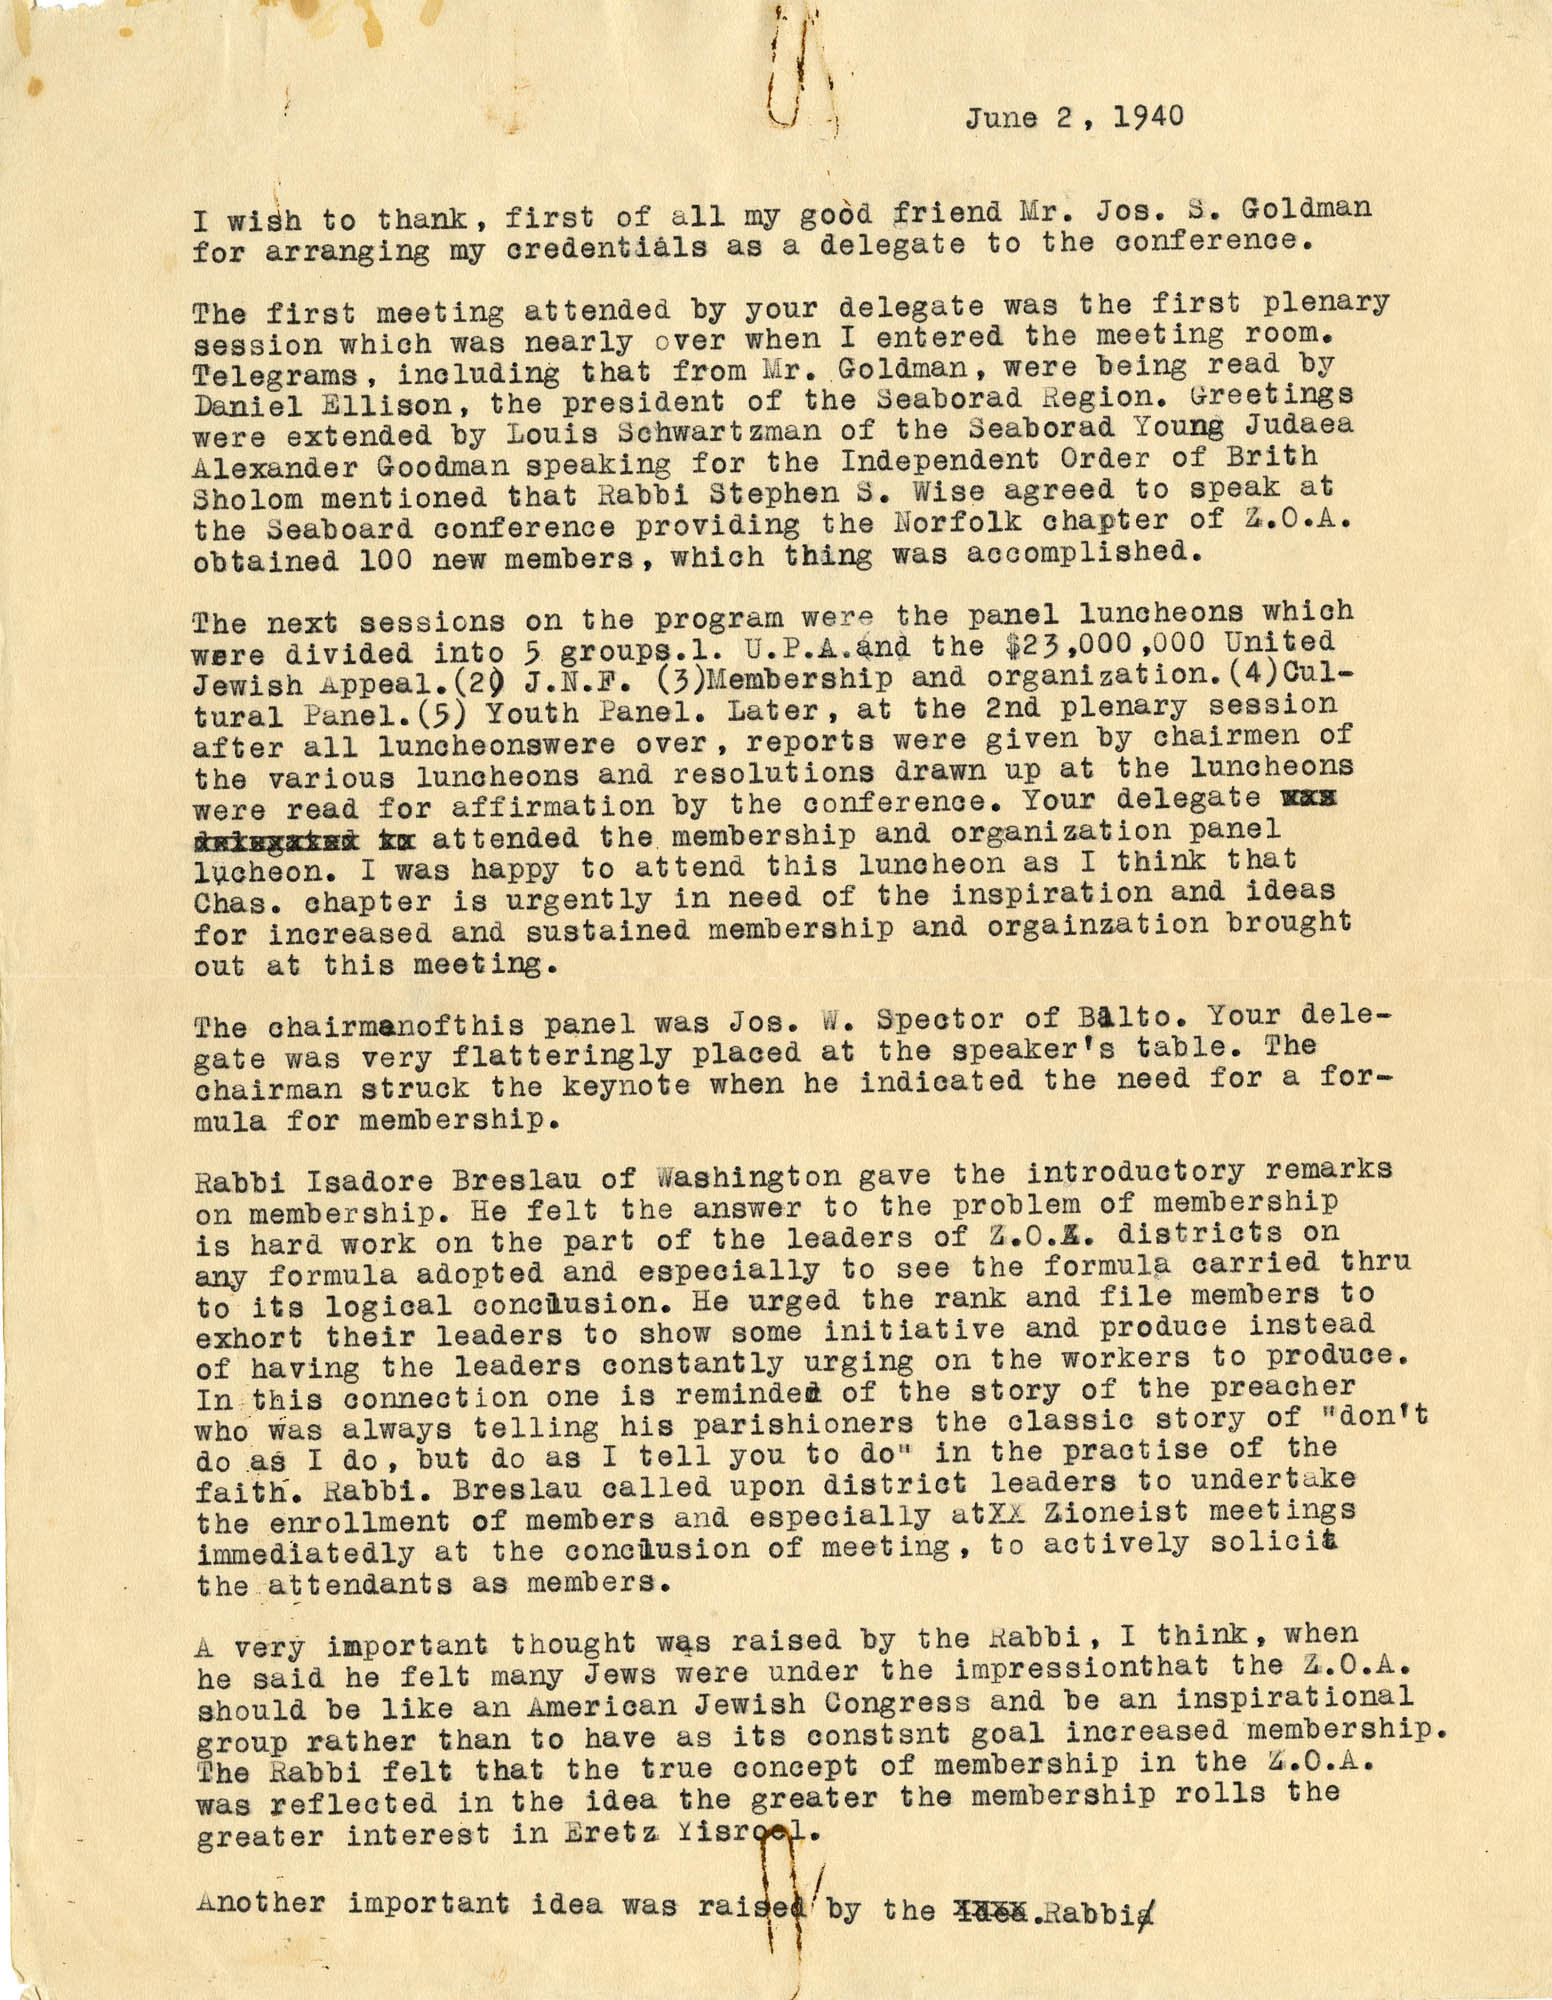 04. June 2, 1940 Convention Review